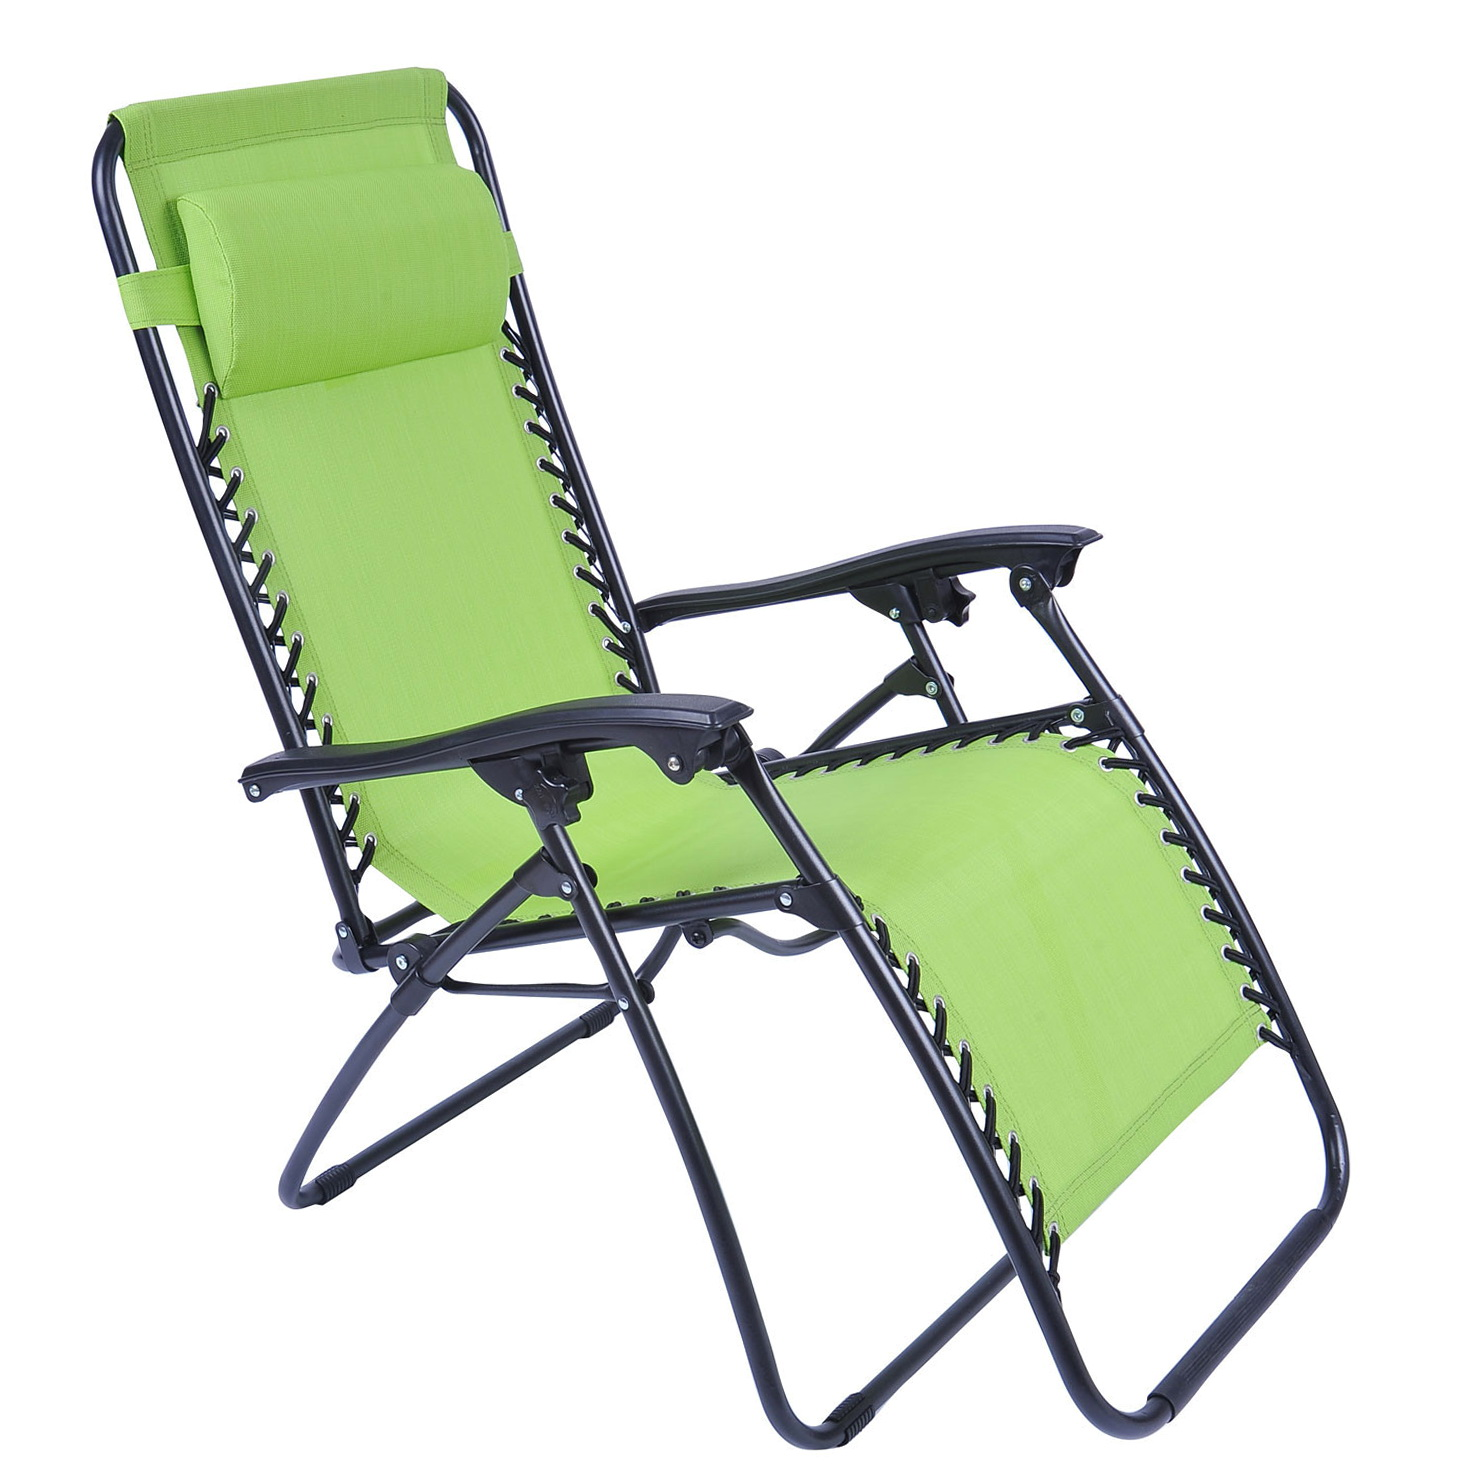 Folding Lounge Beach Chair Folding Chaise Lounge Chair Patio Outdoor Pool Beach Lawn